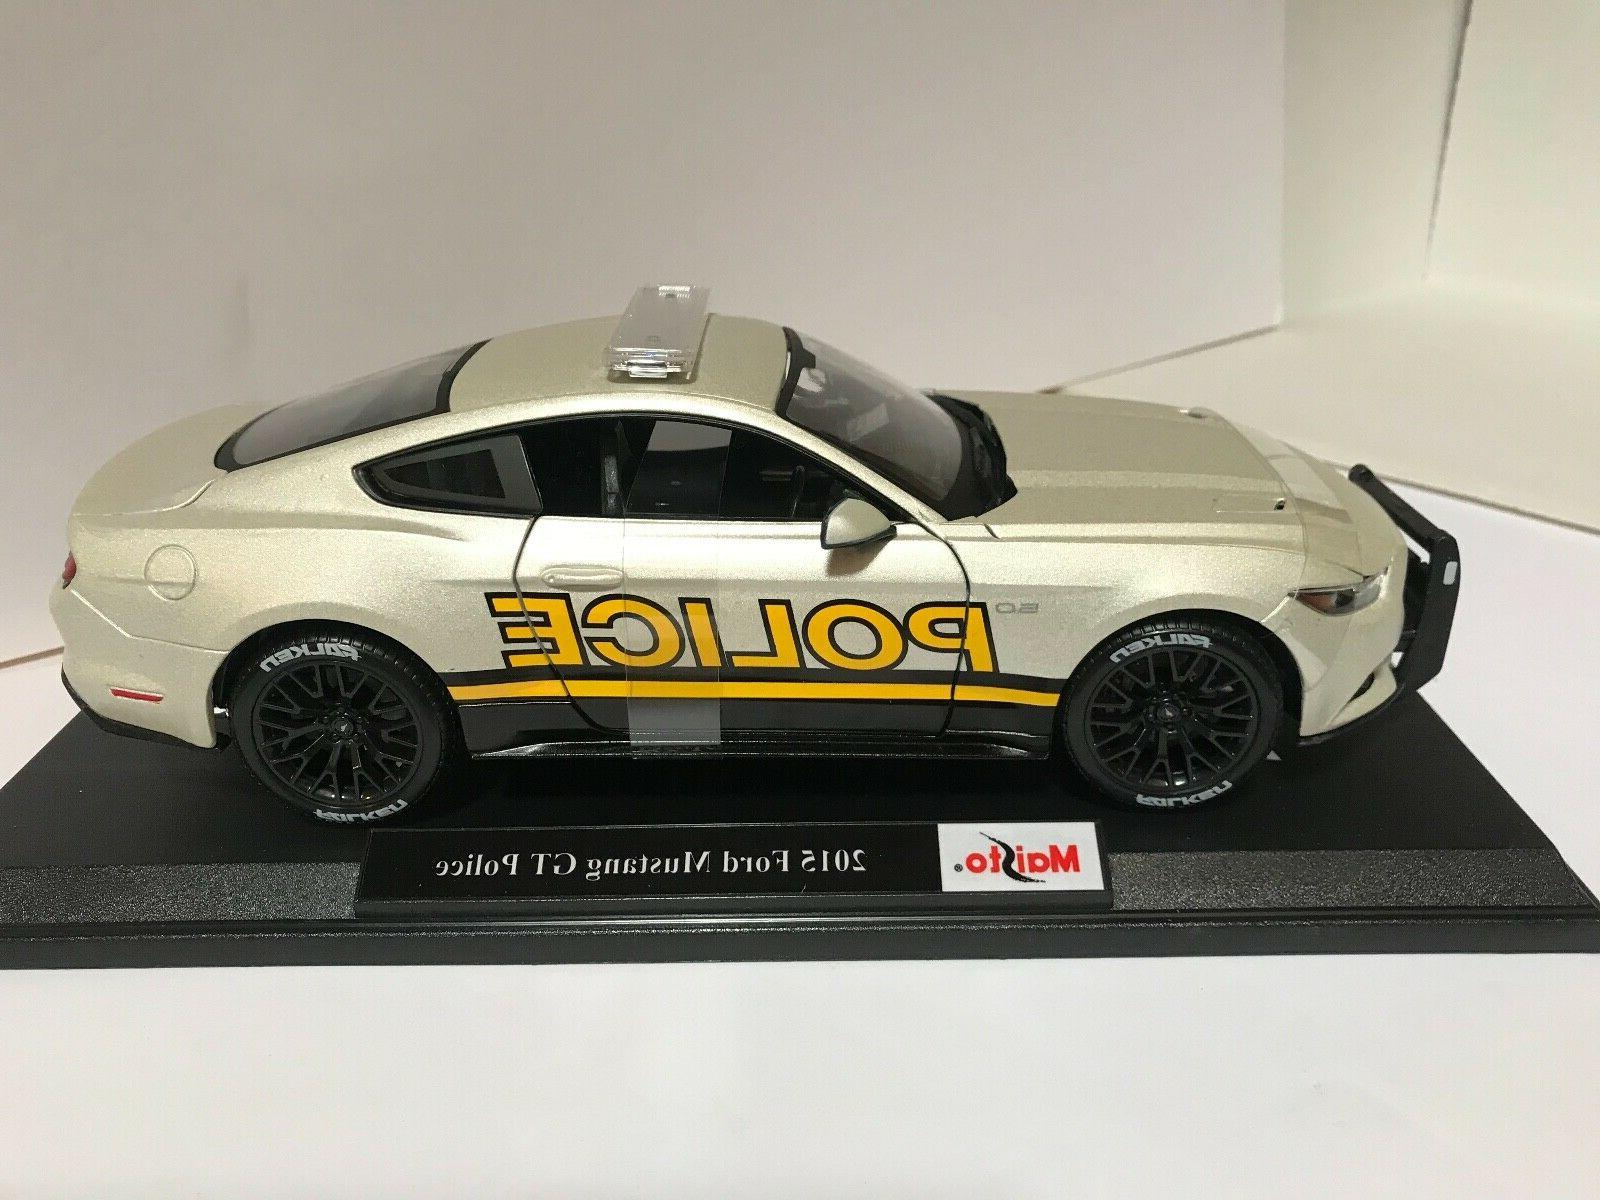 Maisto 118 scale 1968 ford mustang gt cobra jet diecast vehicle